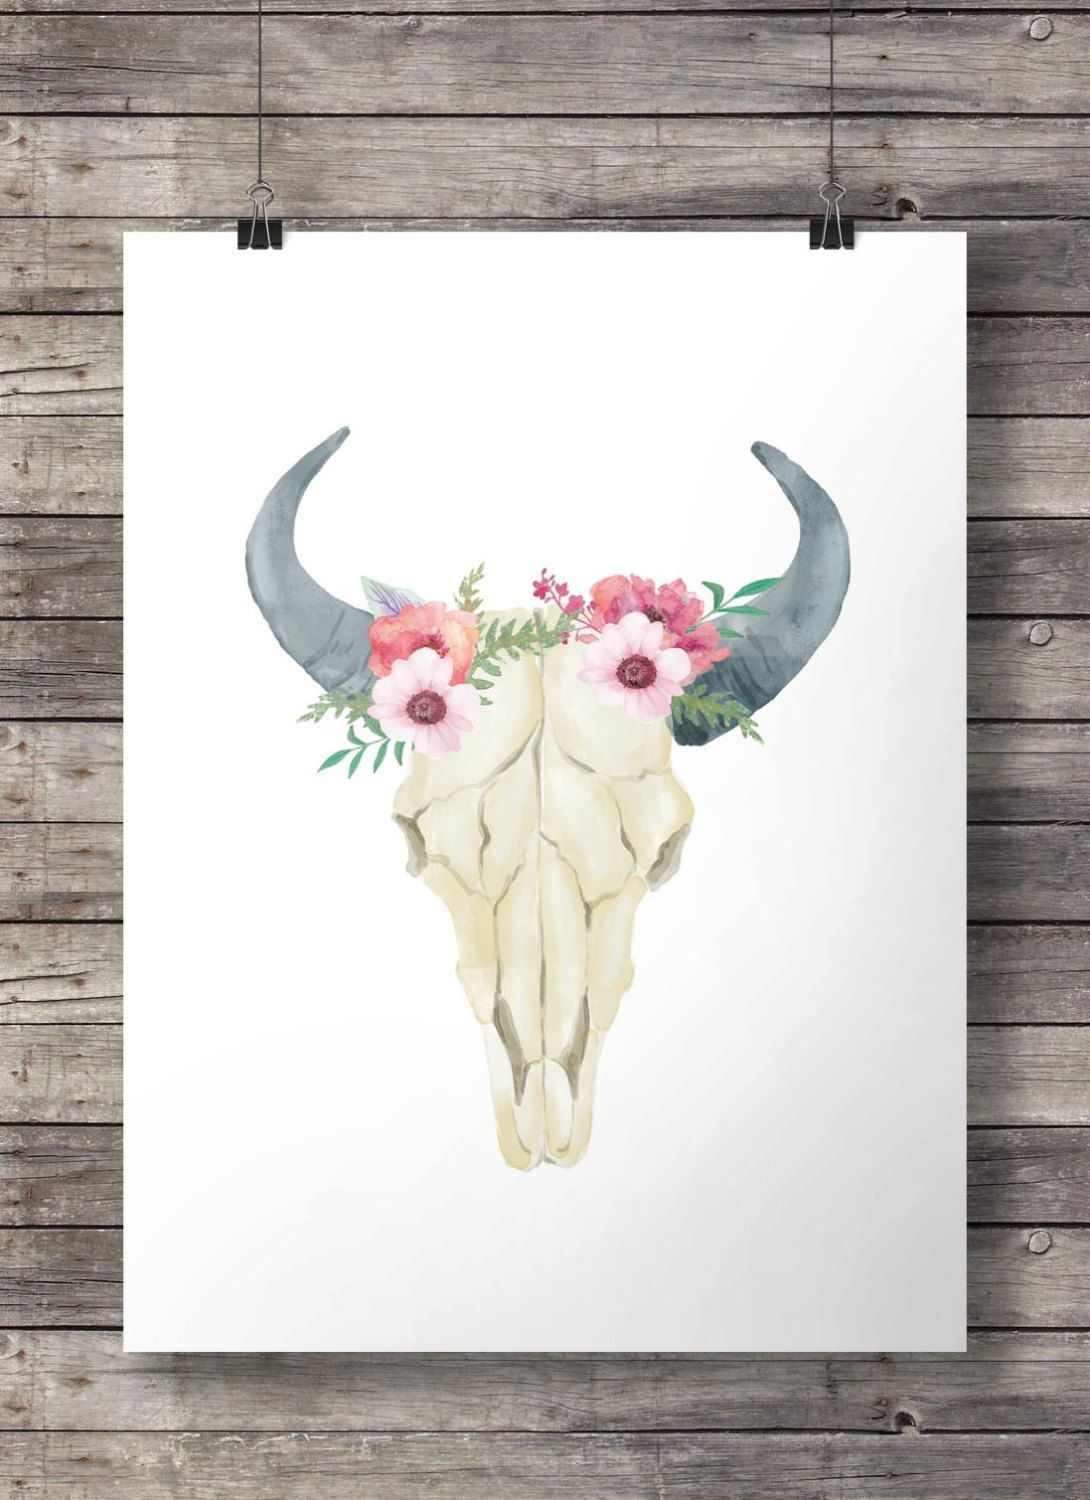 Bull Skull Wall Decor cow skull, printable wall art, wall decor, feather, boho